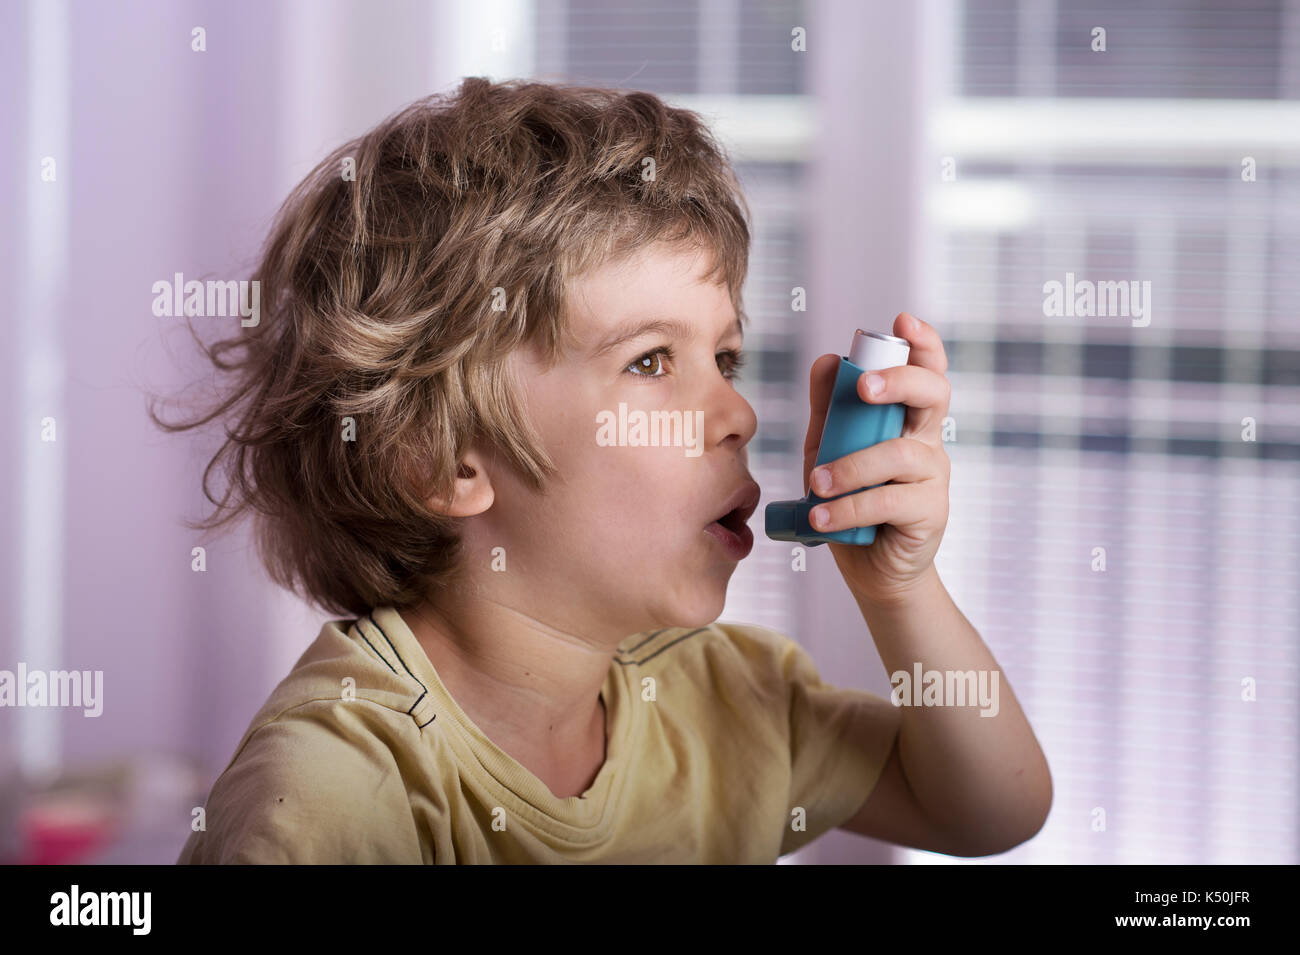 Boy using asthma inhaler to treat inflammatory disease, wheezing, coughing, chest tightness and shortness of breath. Allergy treating concept. - Stock Image